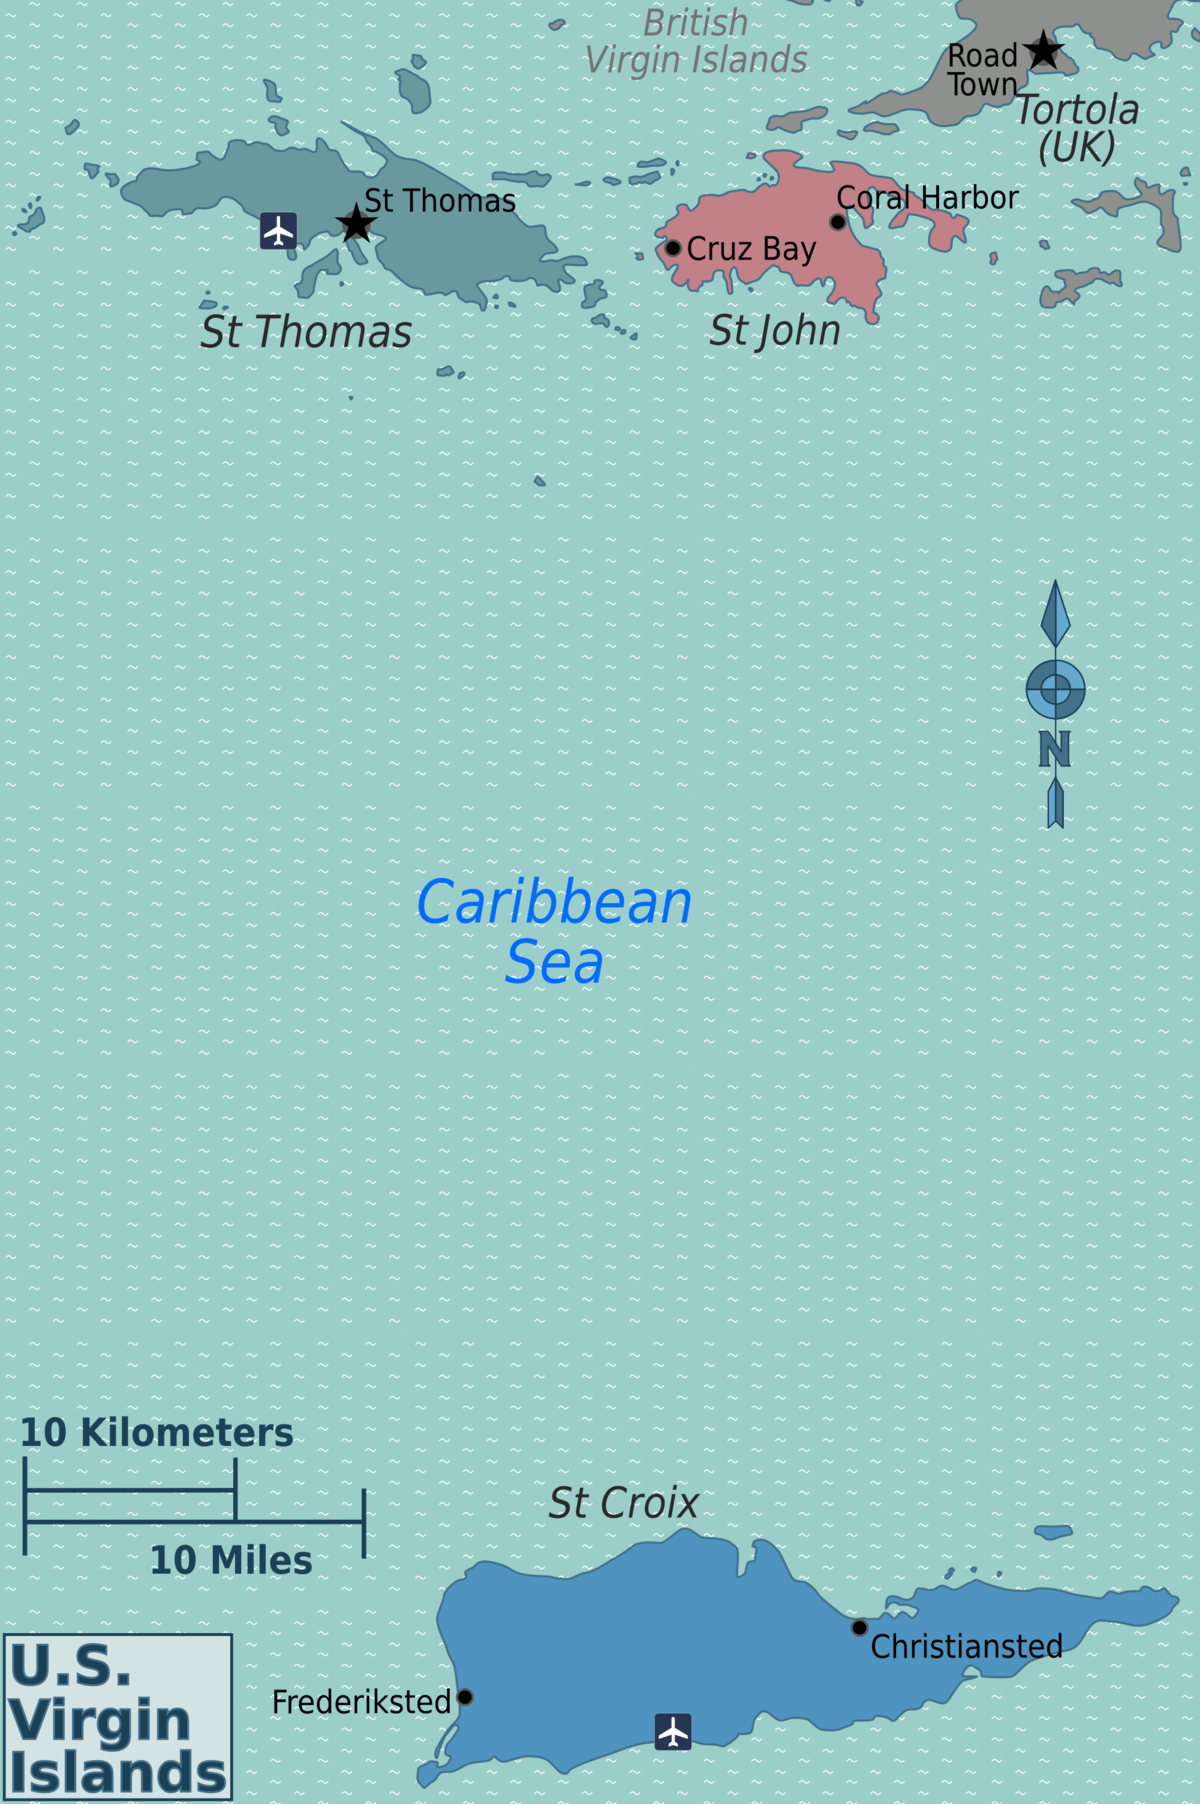 US Virgin Islands Travel Guide At Wikivoyage - Us map with virgin islands